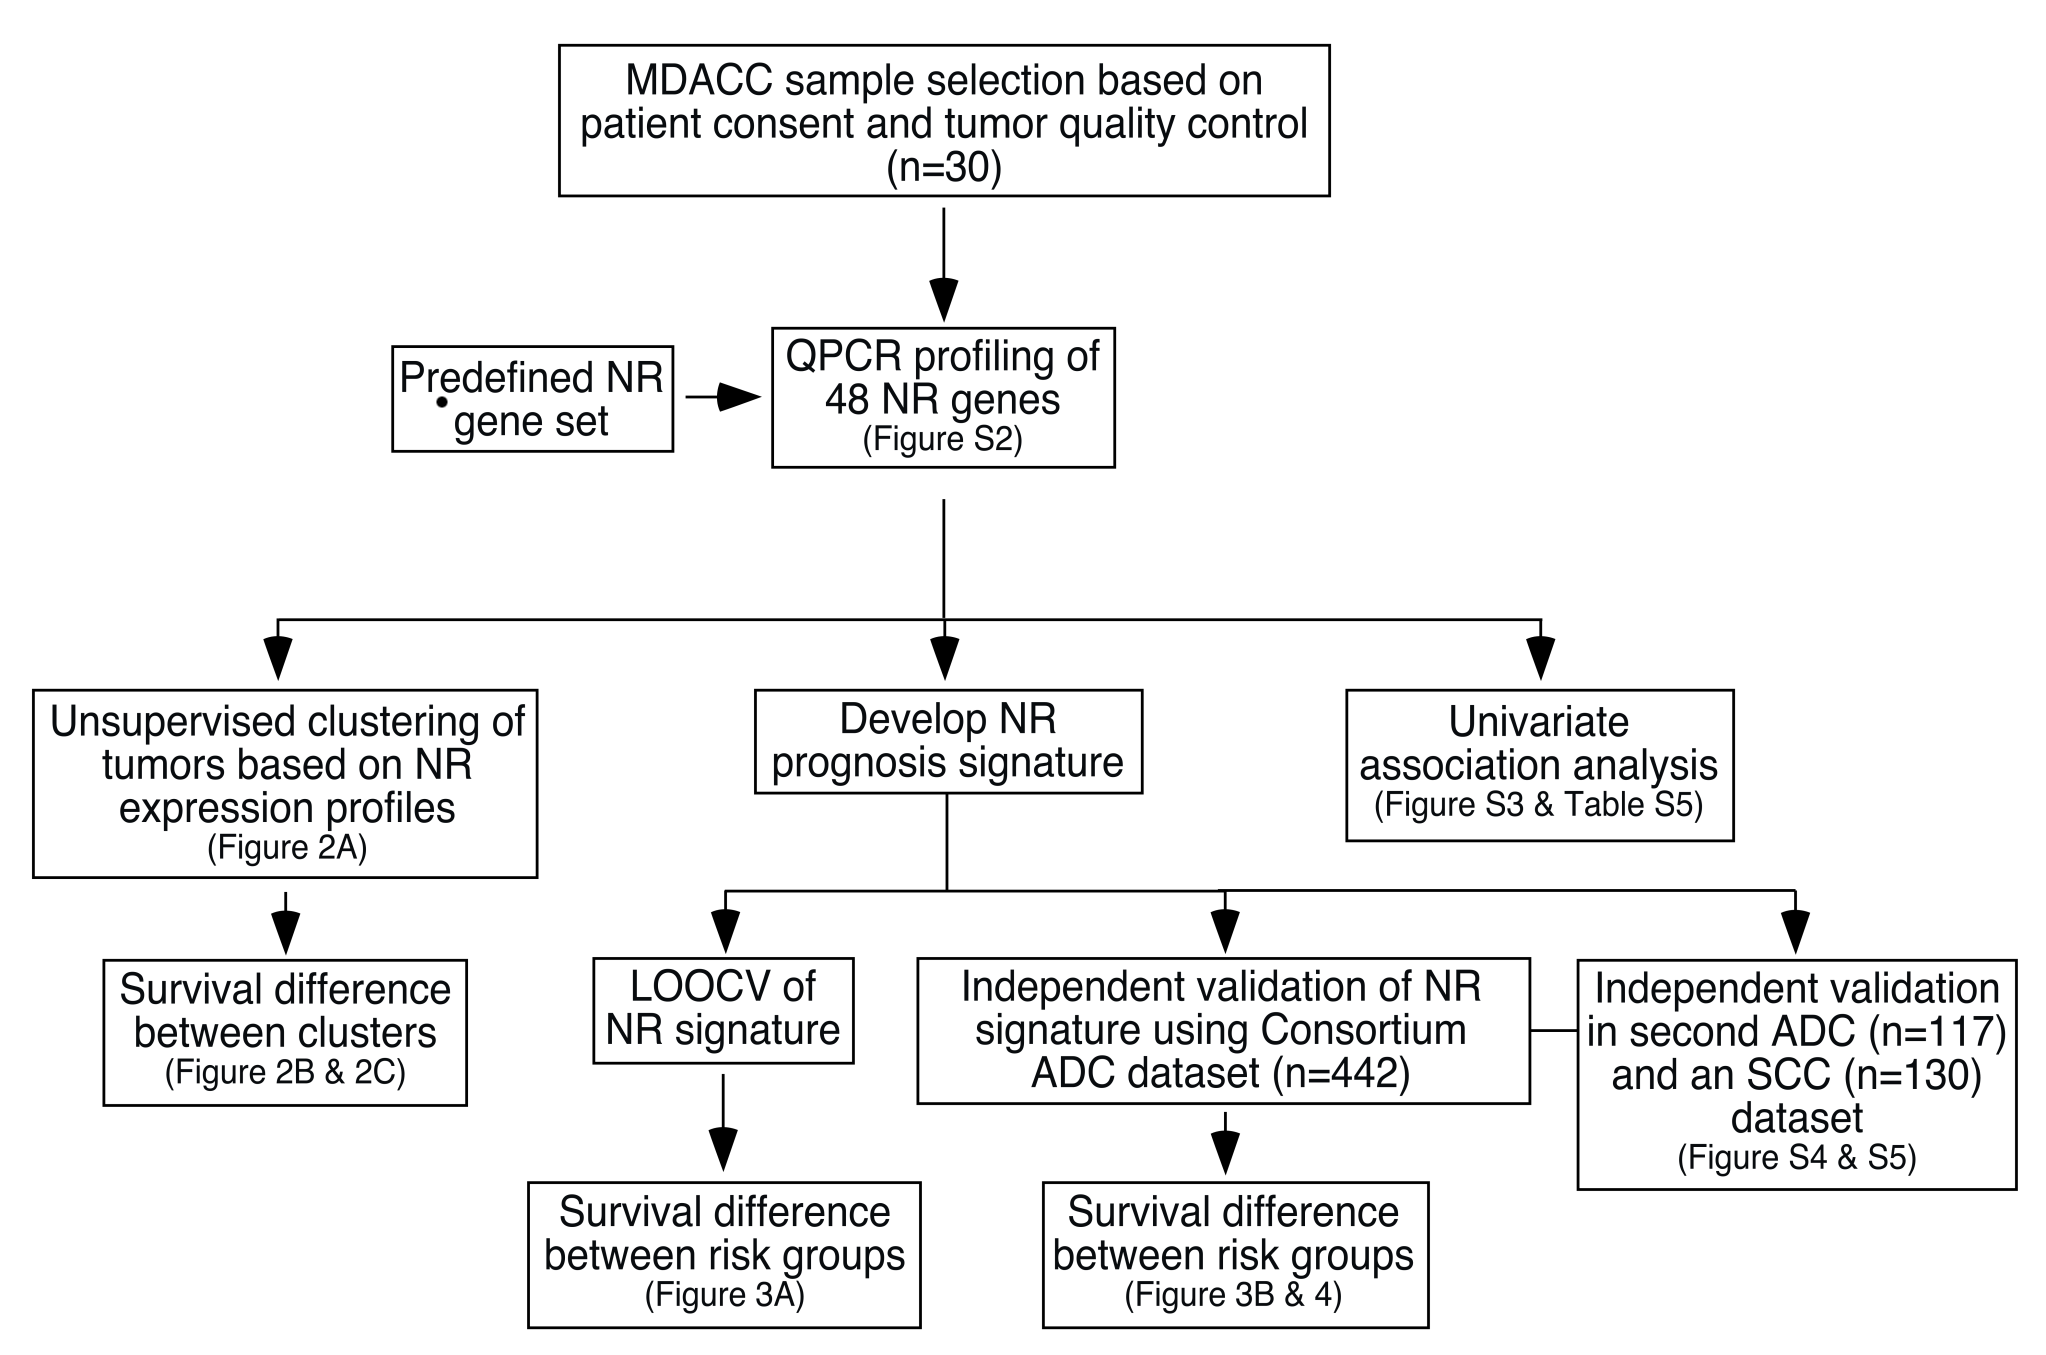 Schematic of the study design for development and validation of the NR prognostic gene signature.